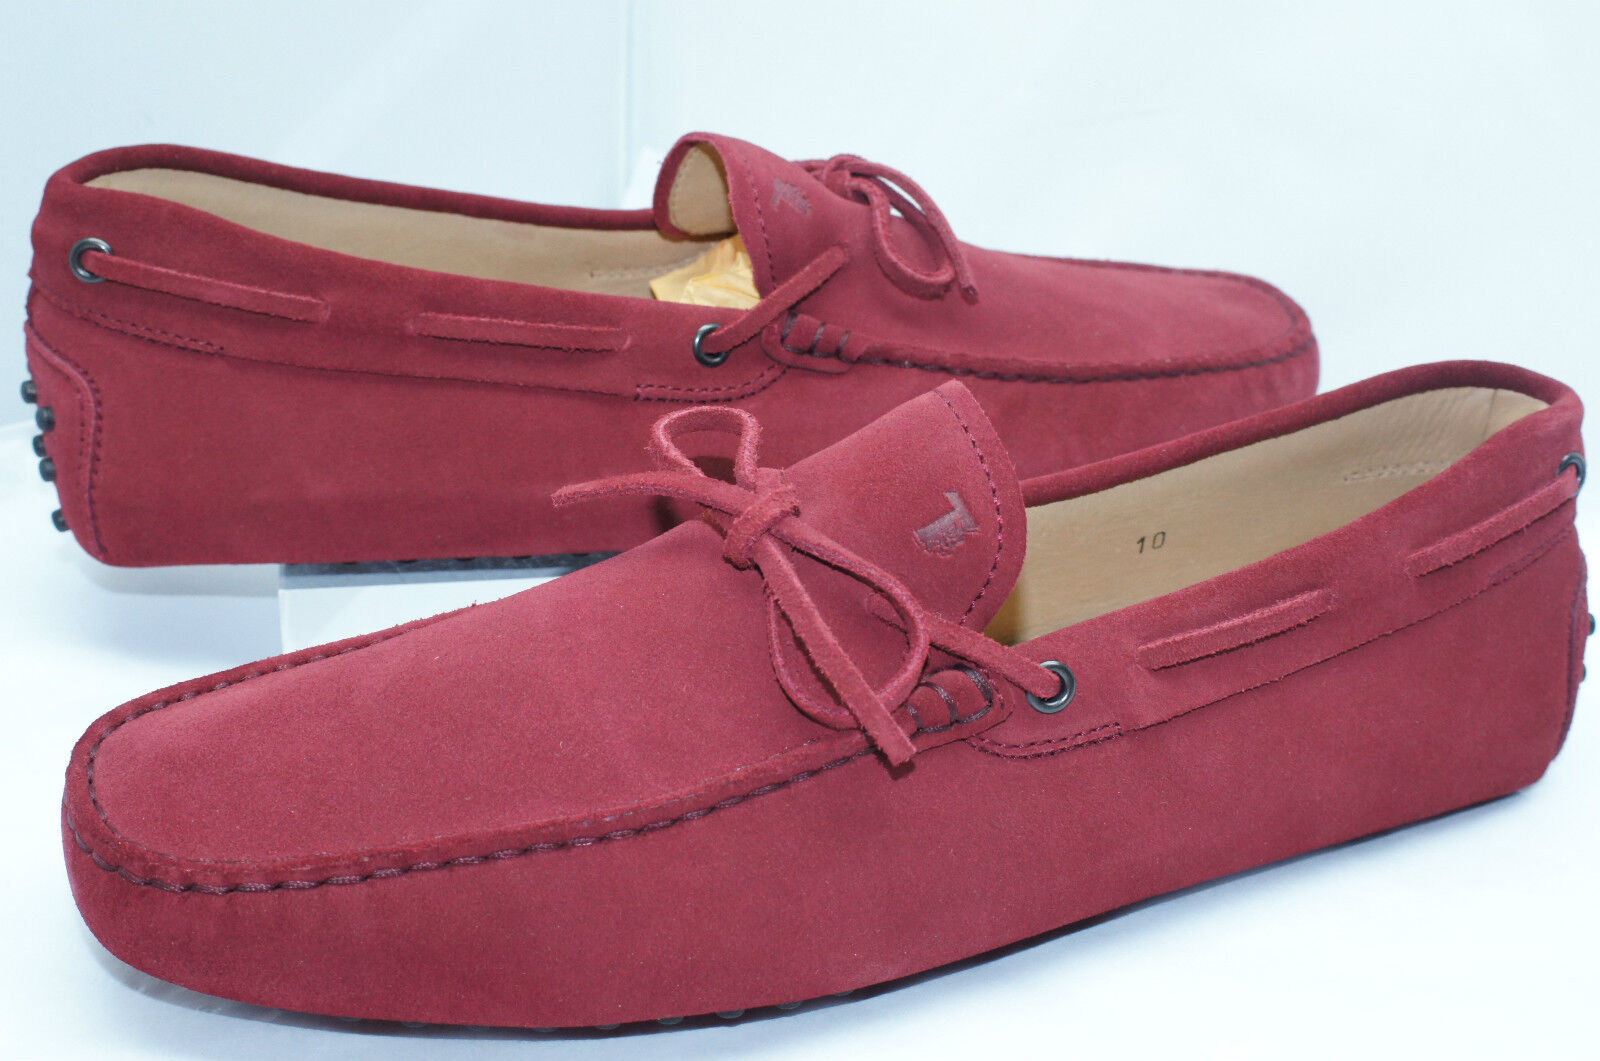 New Tod's Men's rosso scarpe Driver Dimensione 10.5 Loafers Suede Moccasin Loafers Sale